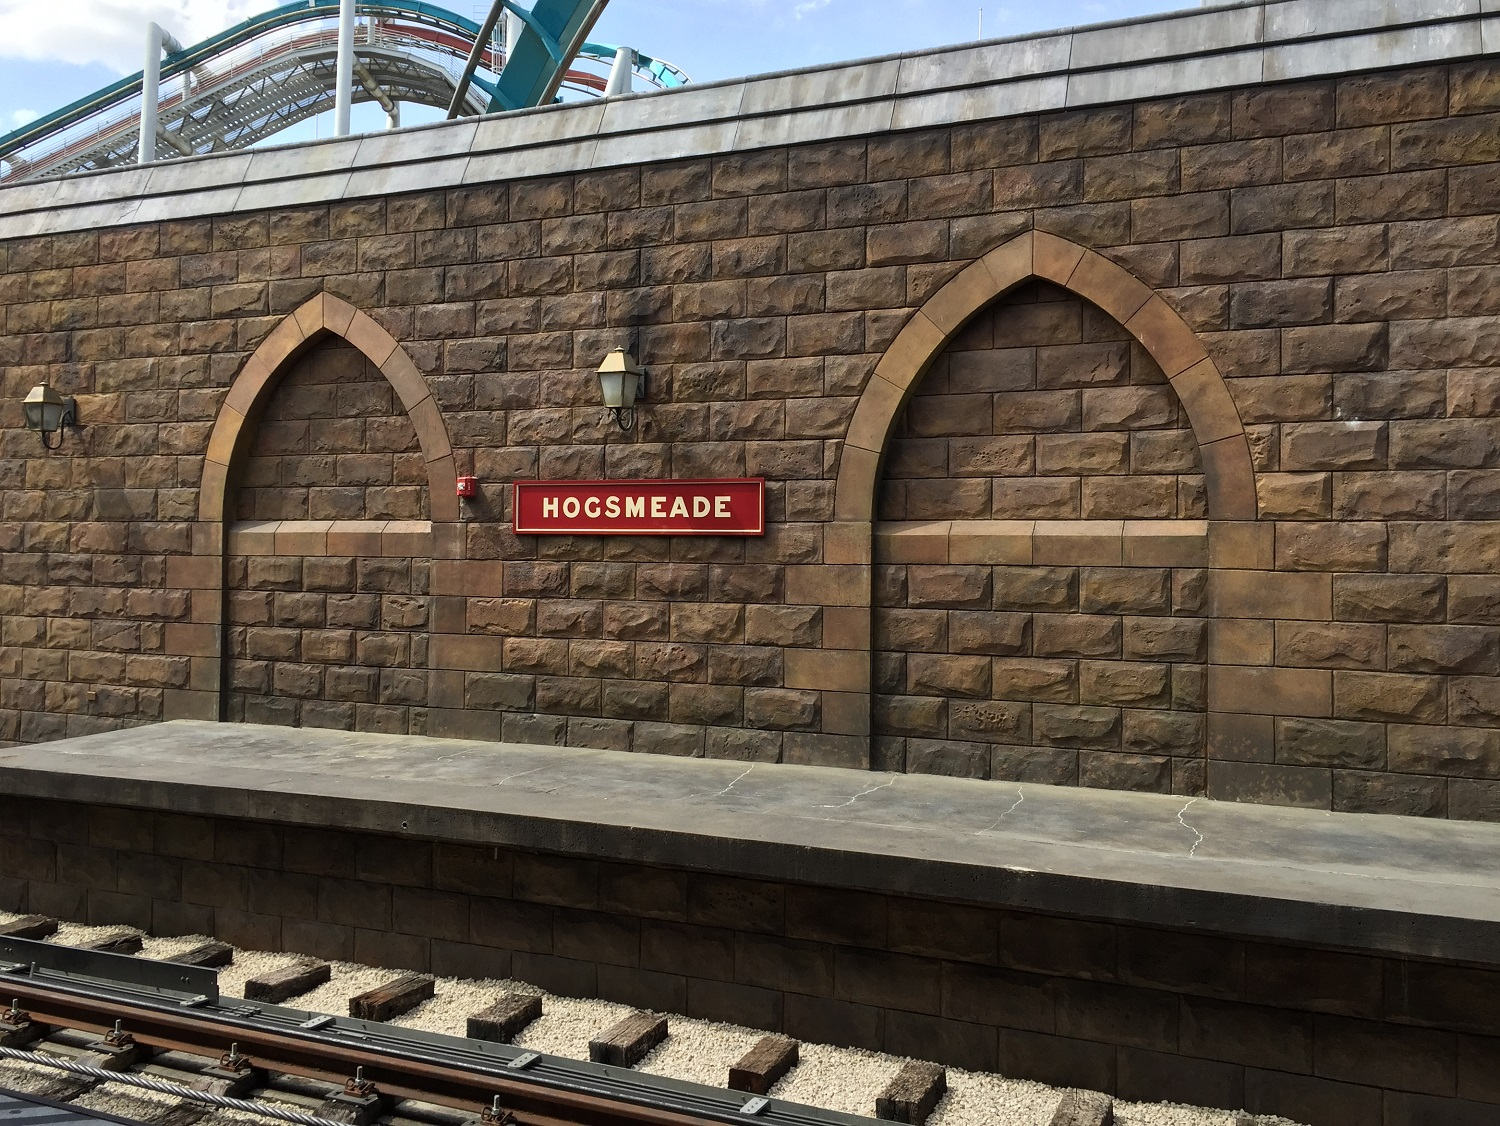 Waiting for the Hogwarts Express at Hogsmeade Station